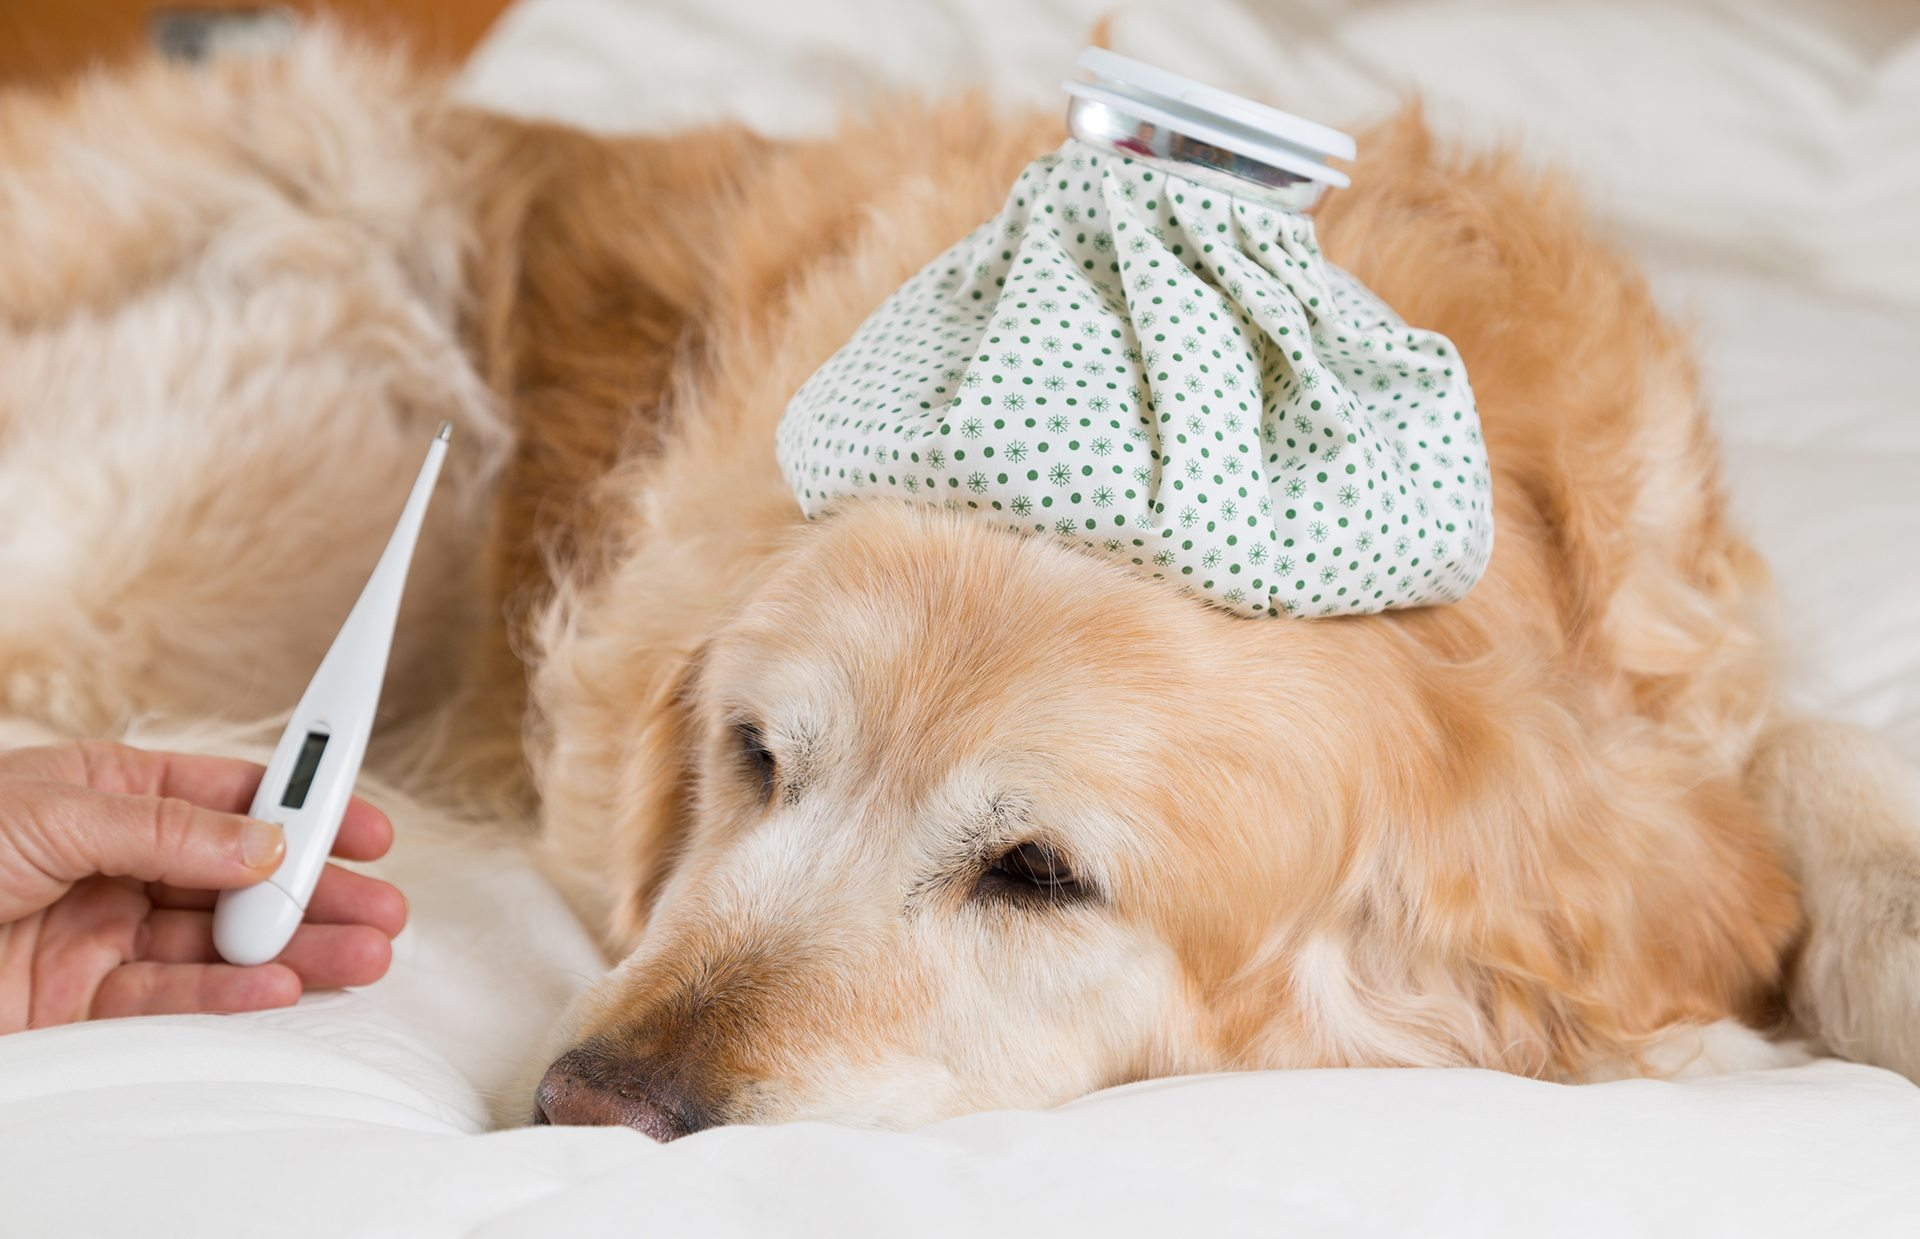 What Is The Normal Body Temperature Of A Dog?